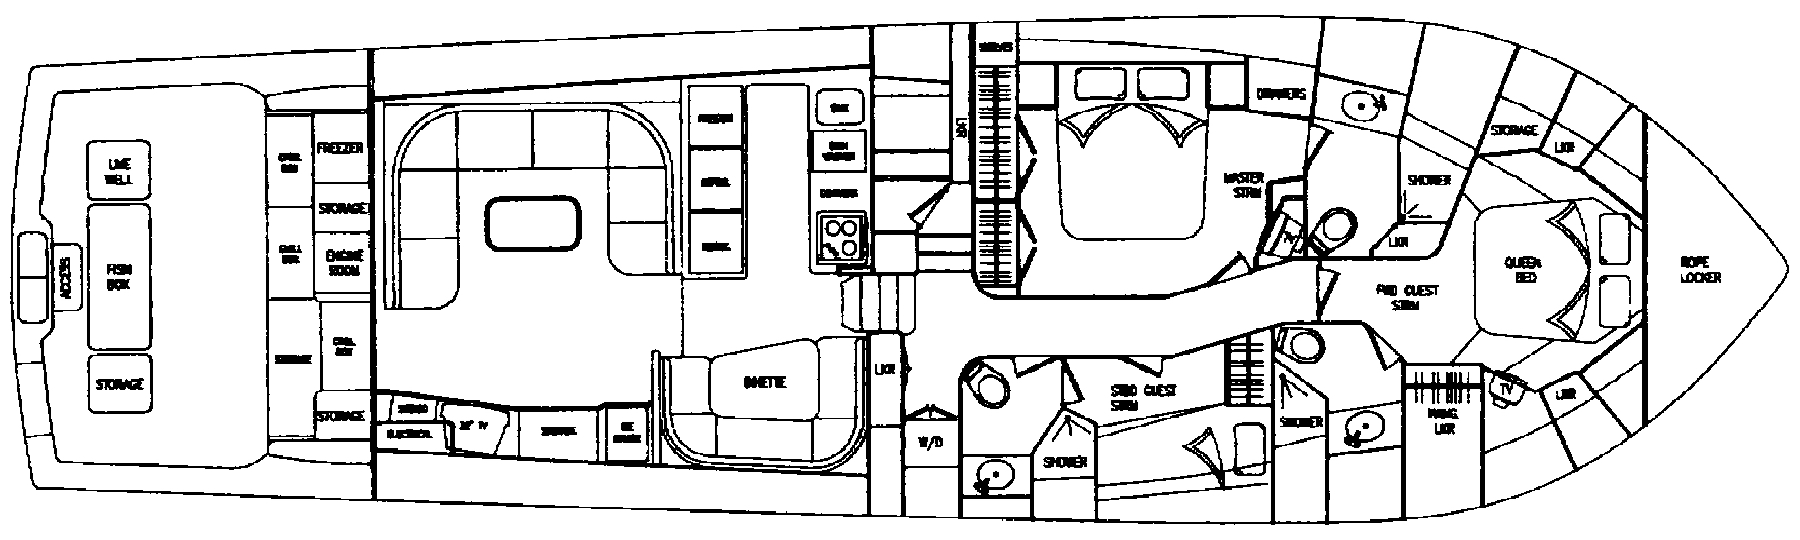 65 Convertible Floor Plan 2